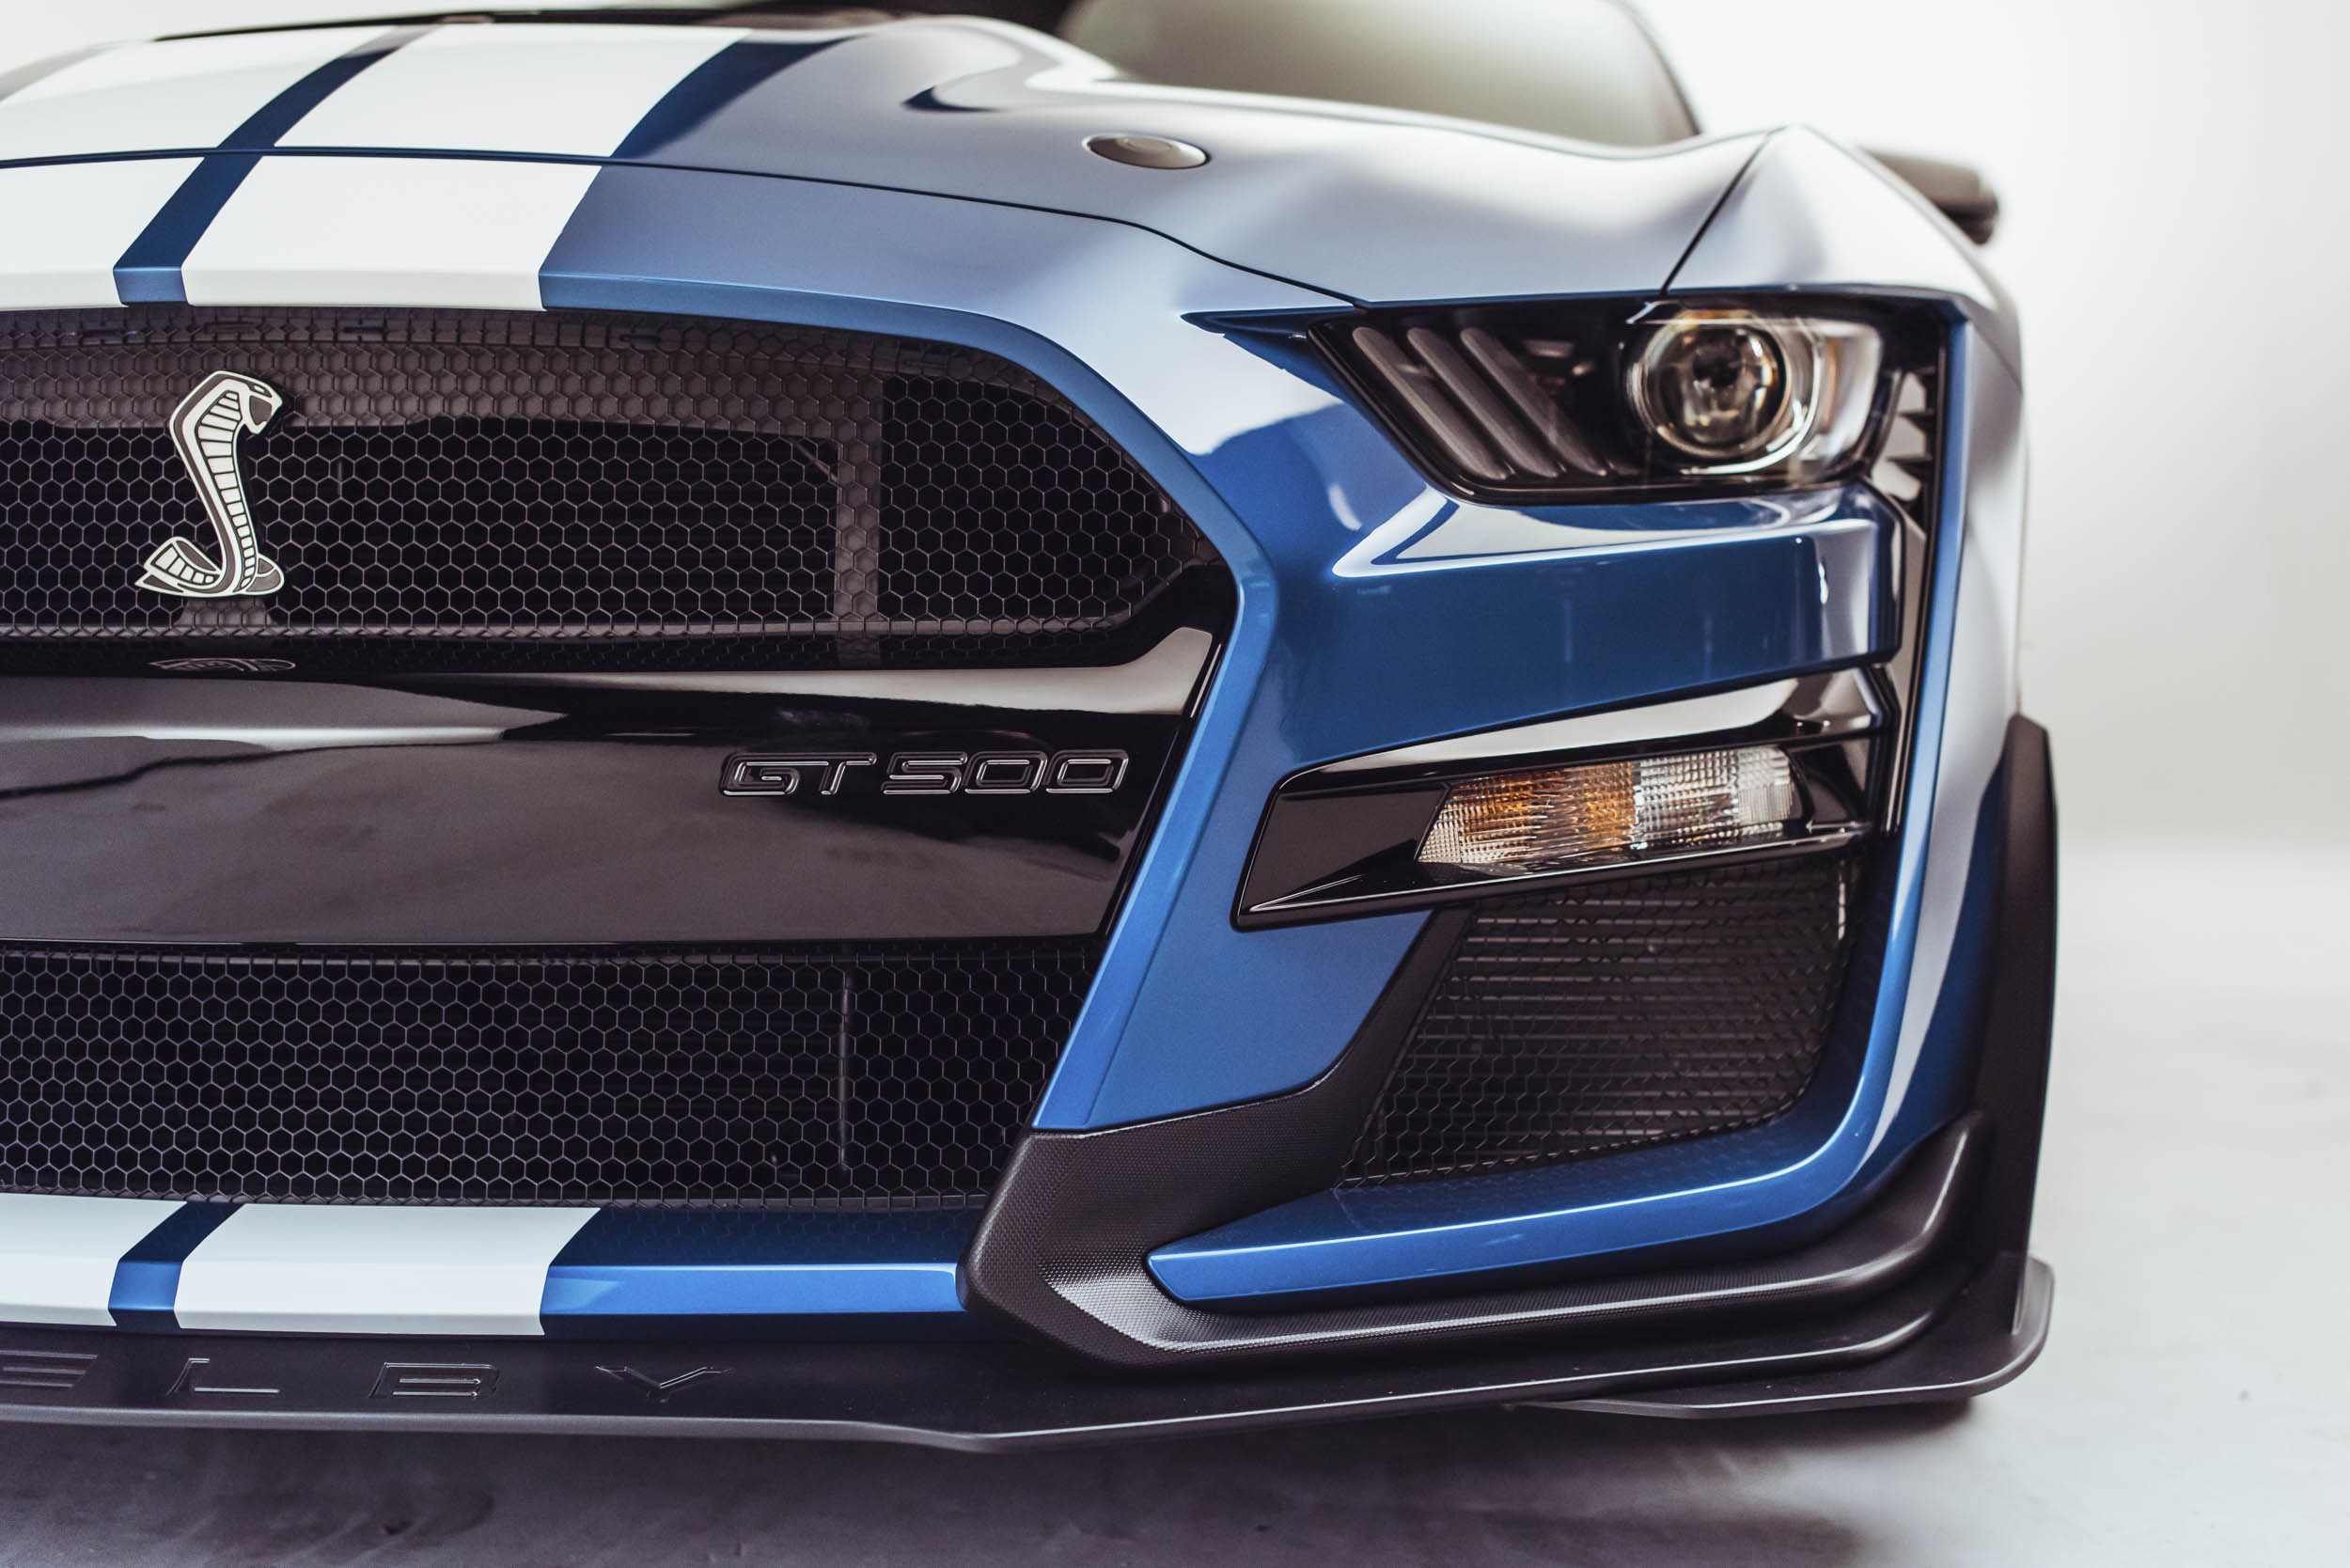 2020 Shelby GT500 front headlight detail